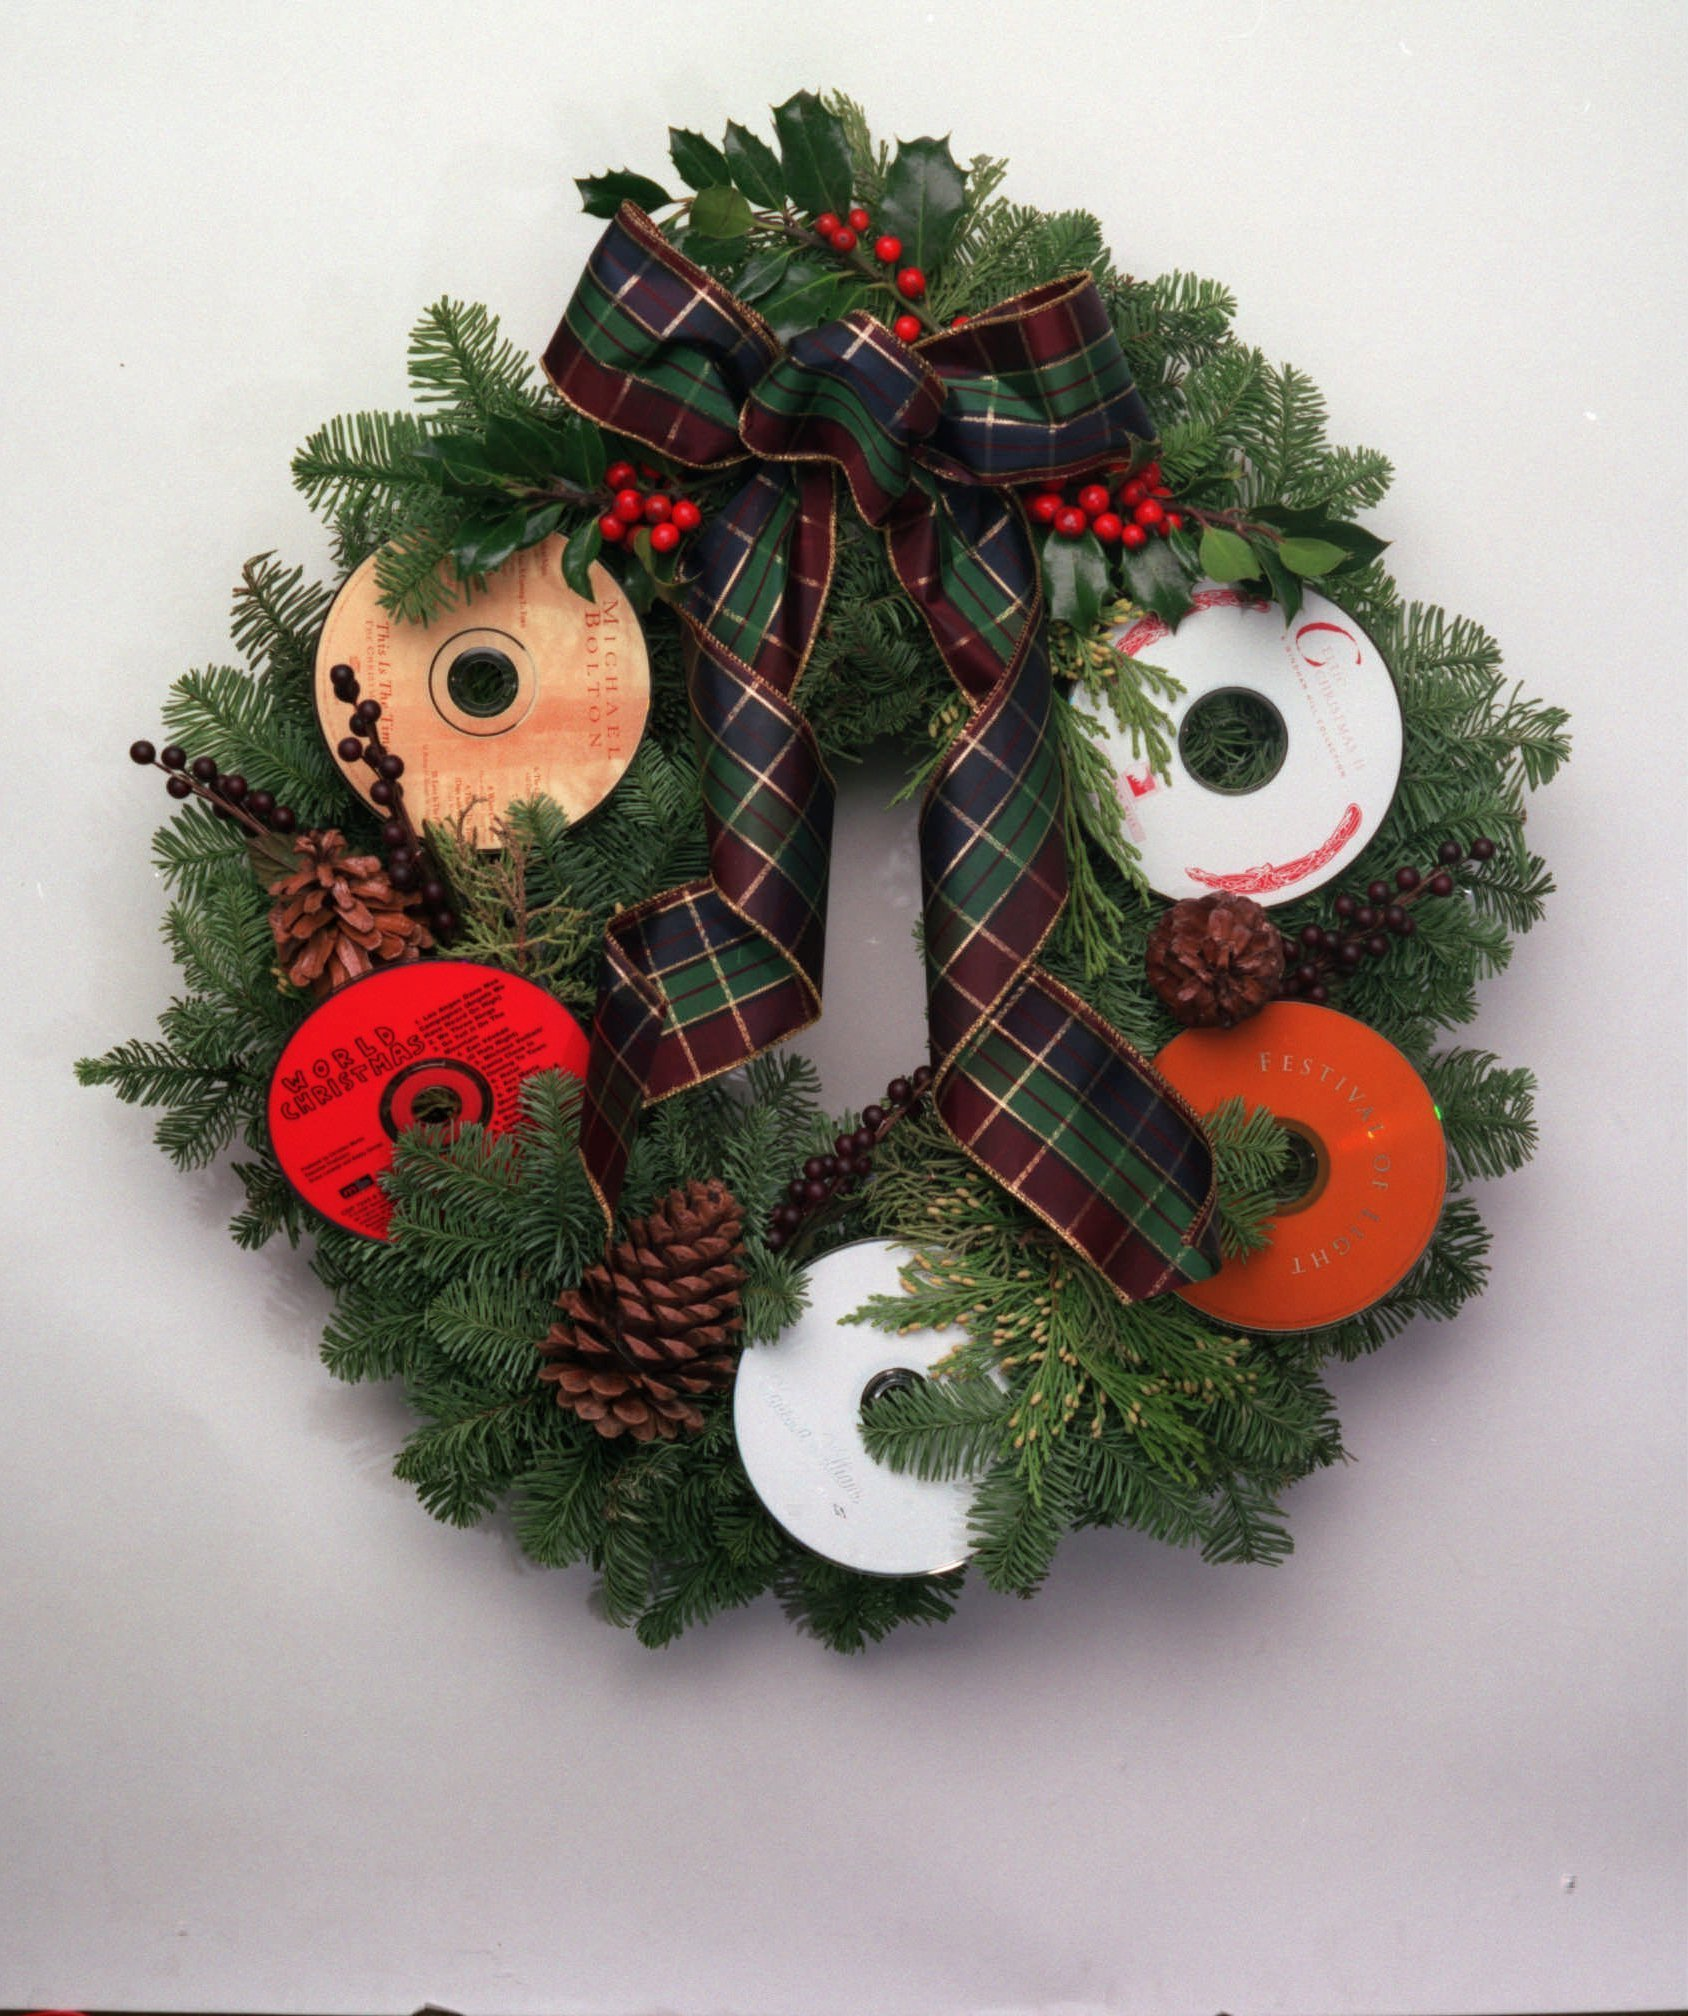 Gift guide 2011: 5 classes for gift-making - Wreath-making workshop